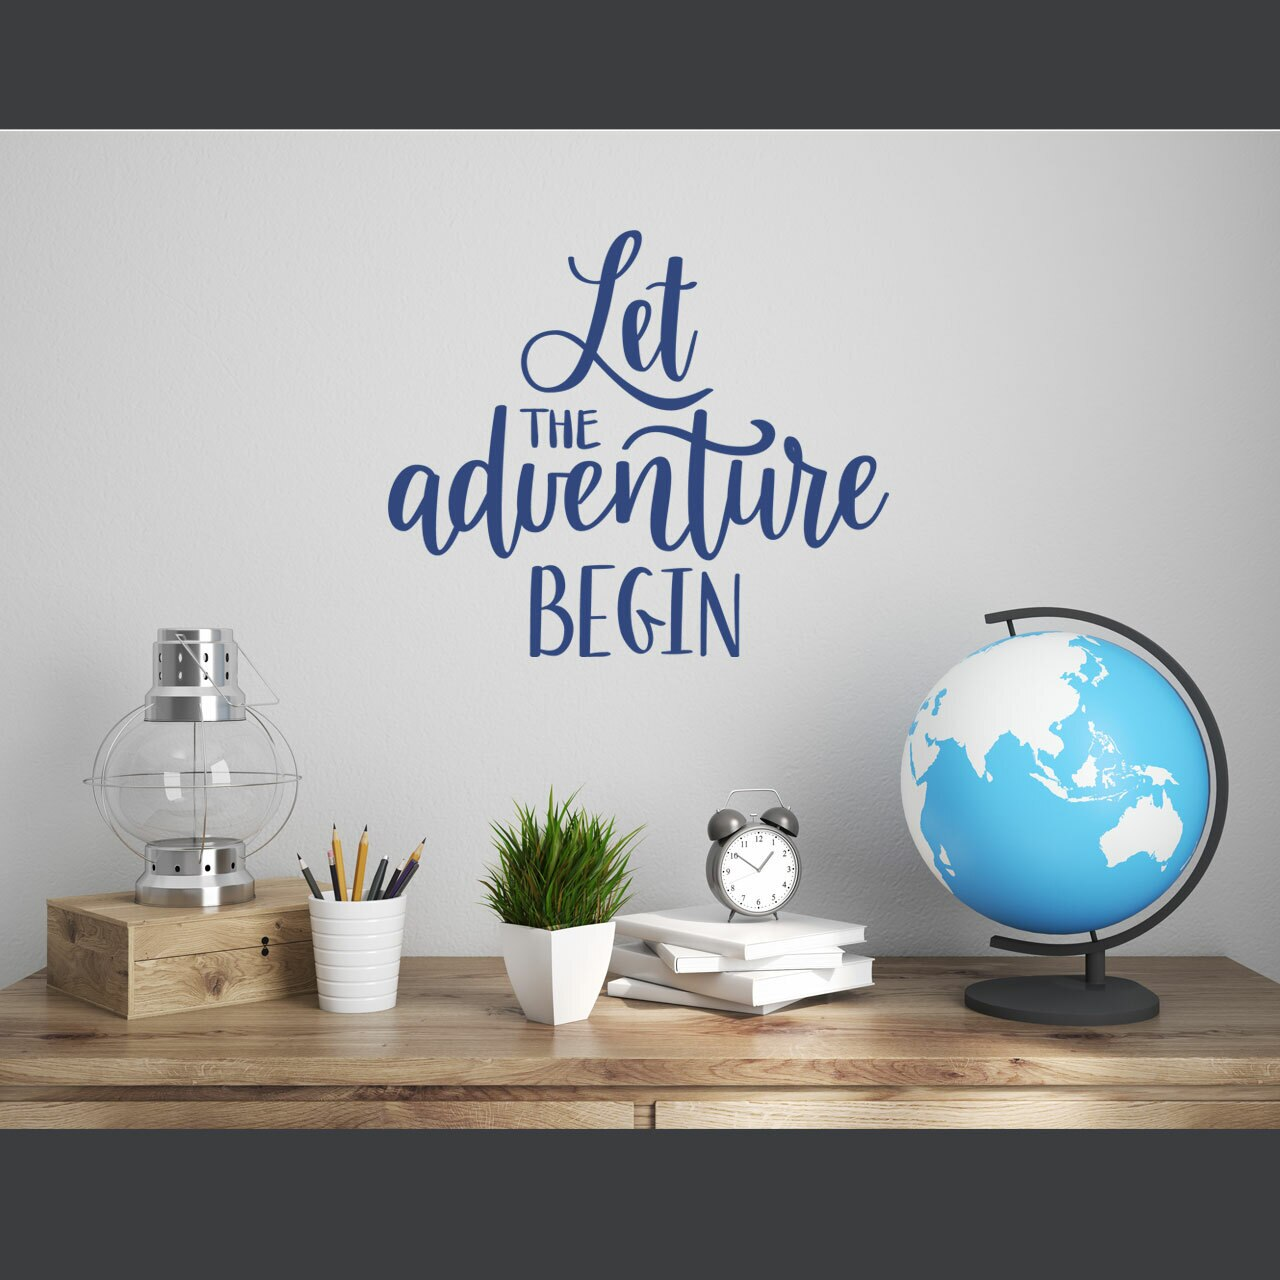 """""""Let the adventure begin"""" written in blue vinyl lettering in mixed fonts stacked in a vertical arrangement on a white wall over a desk with a globe, lantern, pencil cup, a plant,  some books stacked, and a clock"""